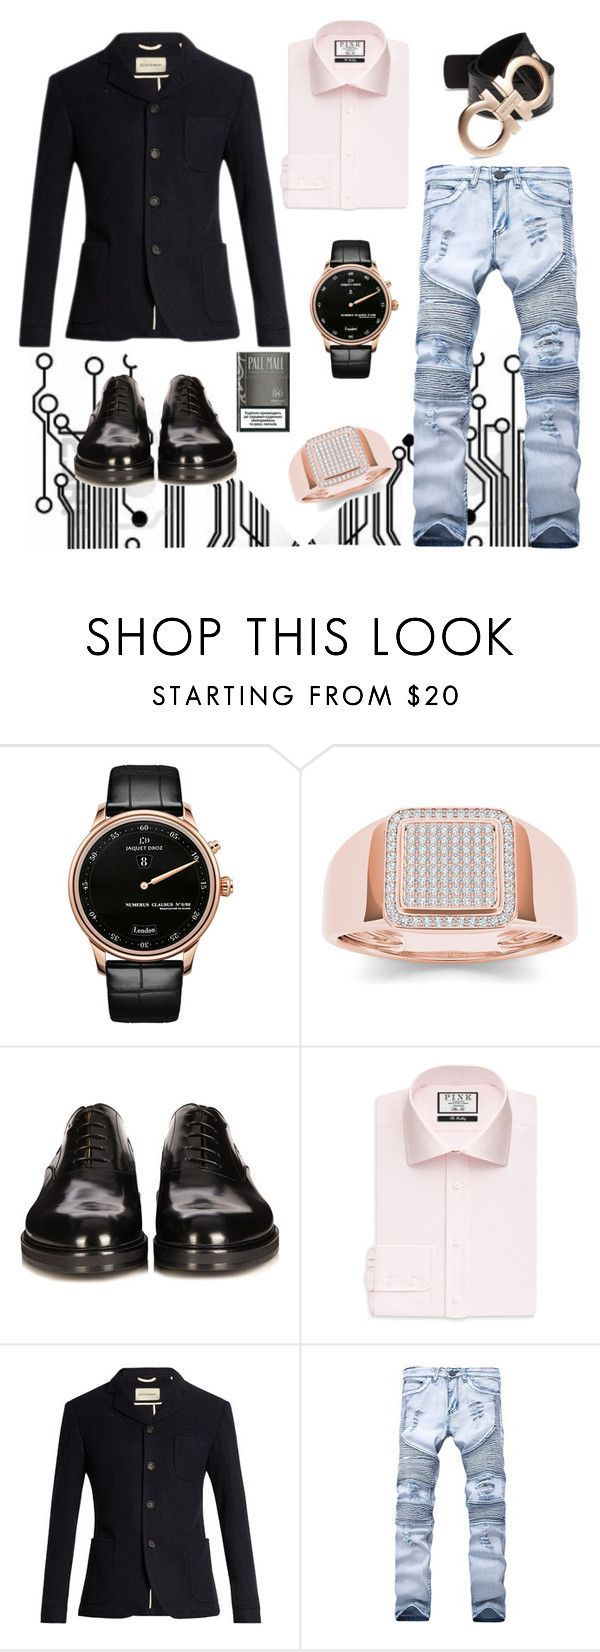 """""""Pale male"""" by acaprice ❤ liked on Polyvore featuring Jaquet Droz, Fendi, Thomas Pink, Oliver Spencer, Salvatore Ferragamo, men's fashion and menswear"""